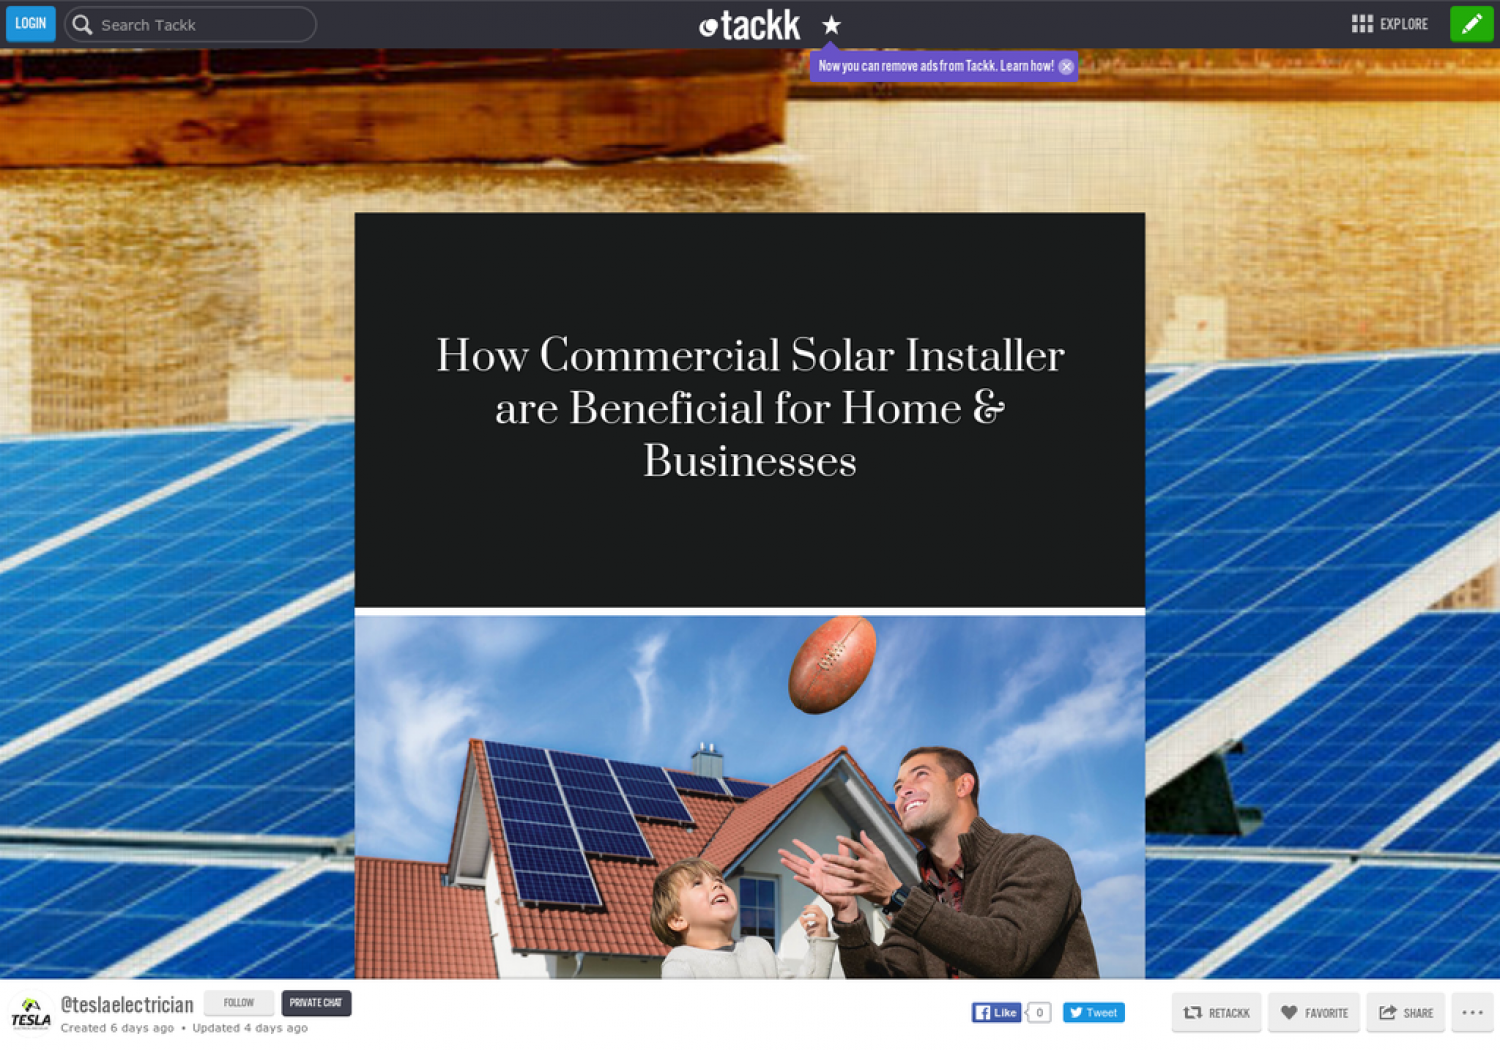 How Commercial Solar Installer are Beneficial for Home & Businesses Infographic